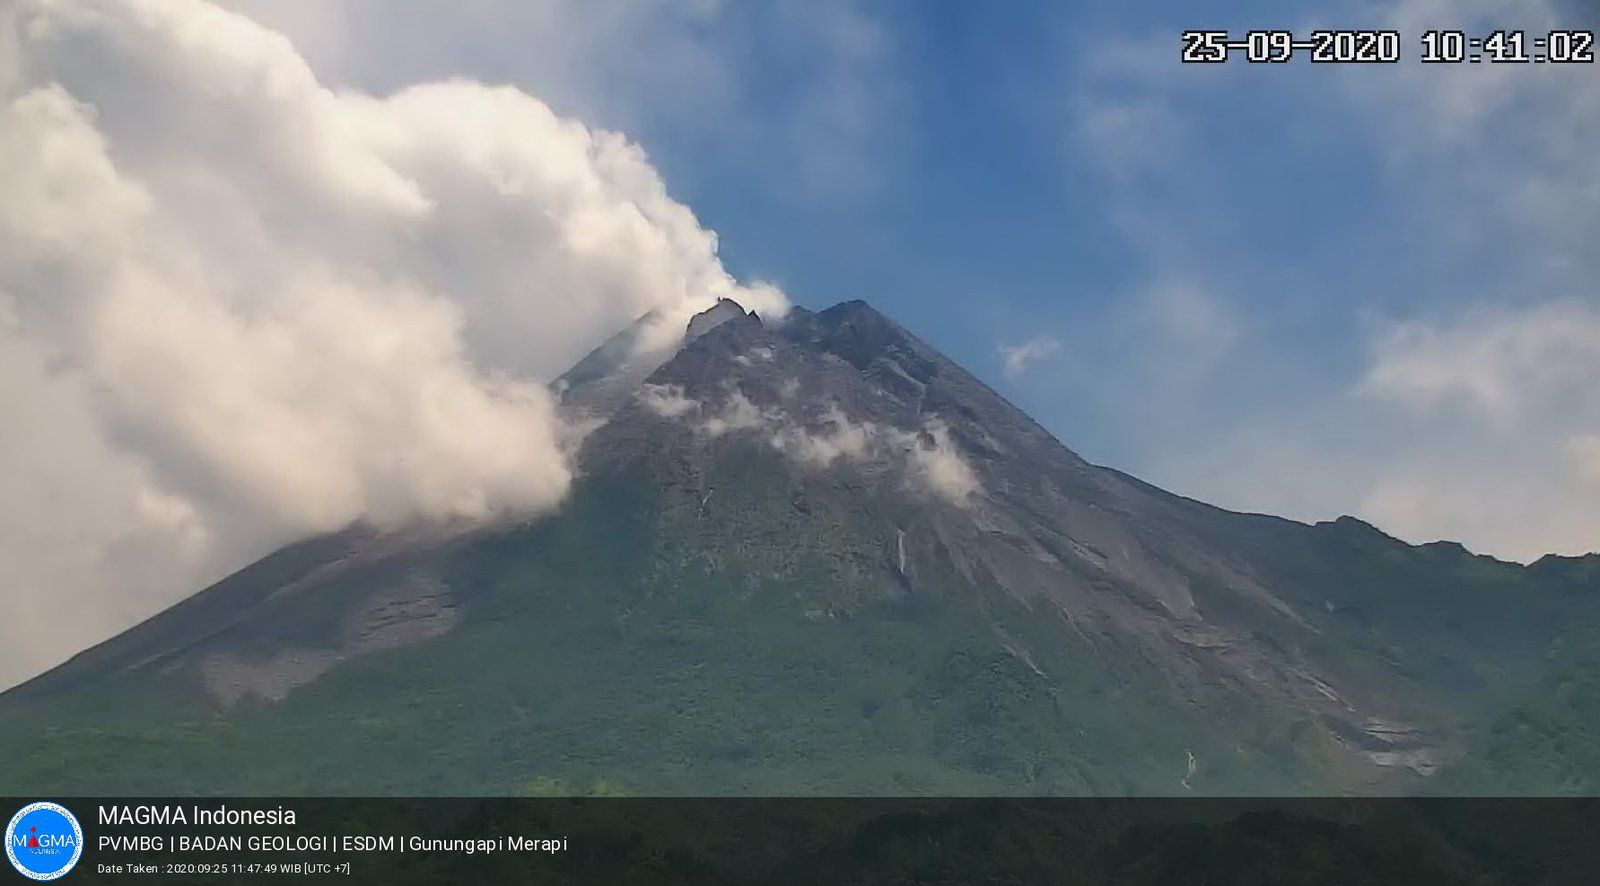 Merapi -Dégazage le 25.09.2020 / 10h41 - photo Magma indonesia